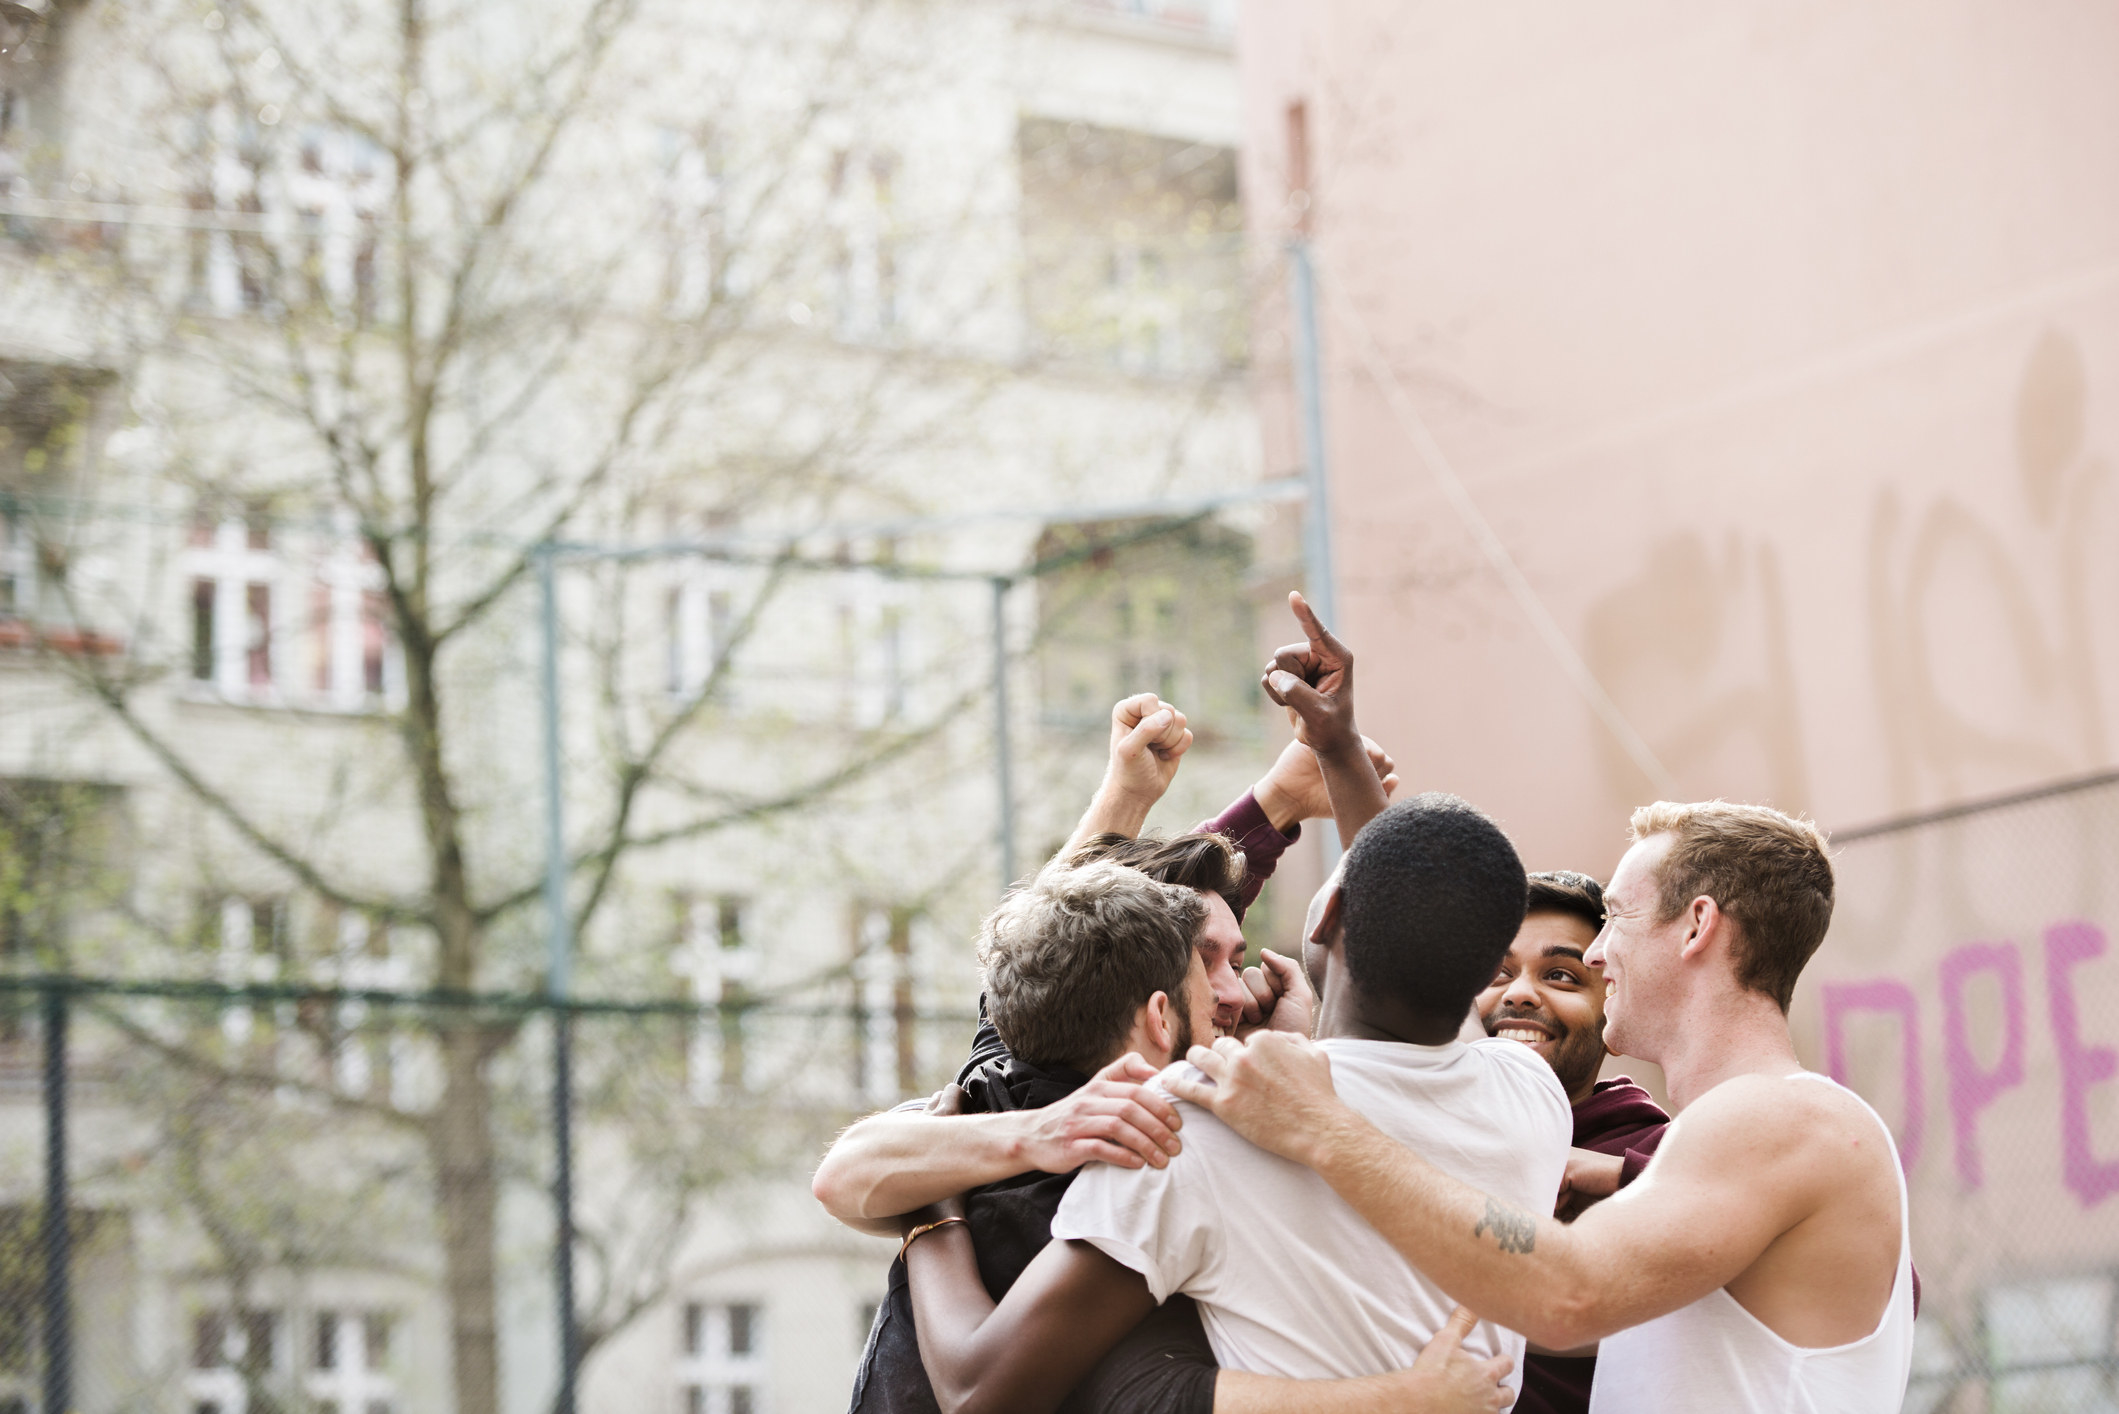 A group of men embracing on a basketball court